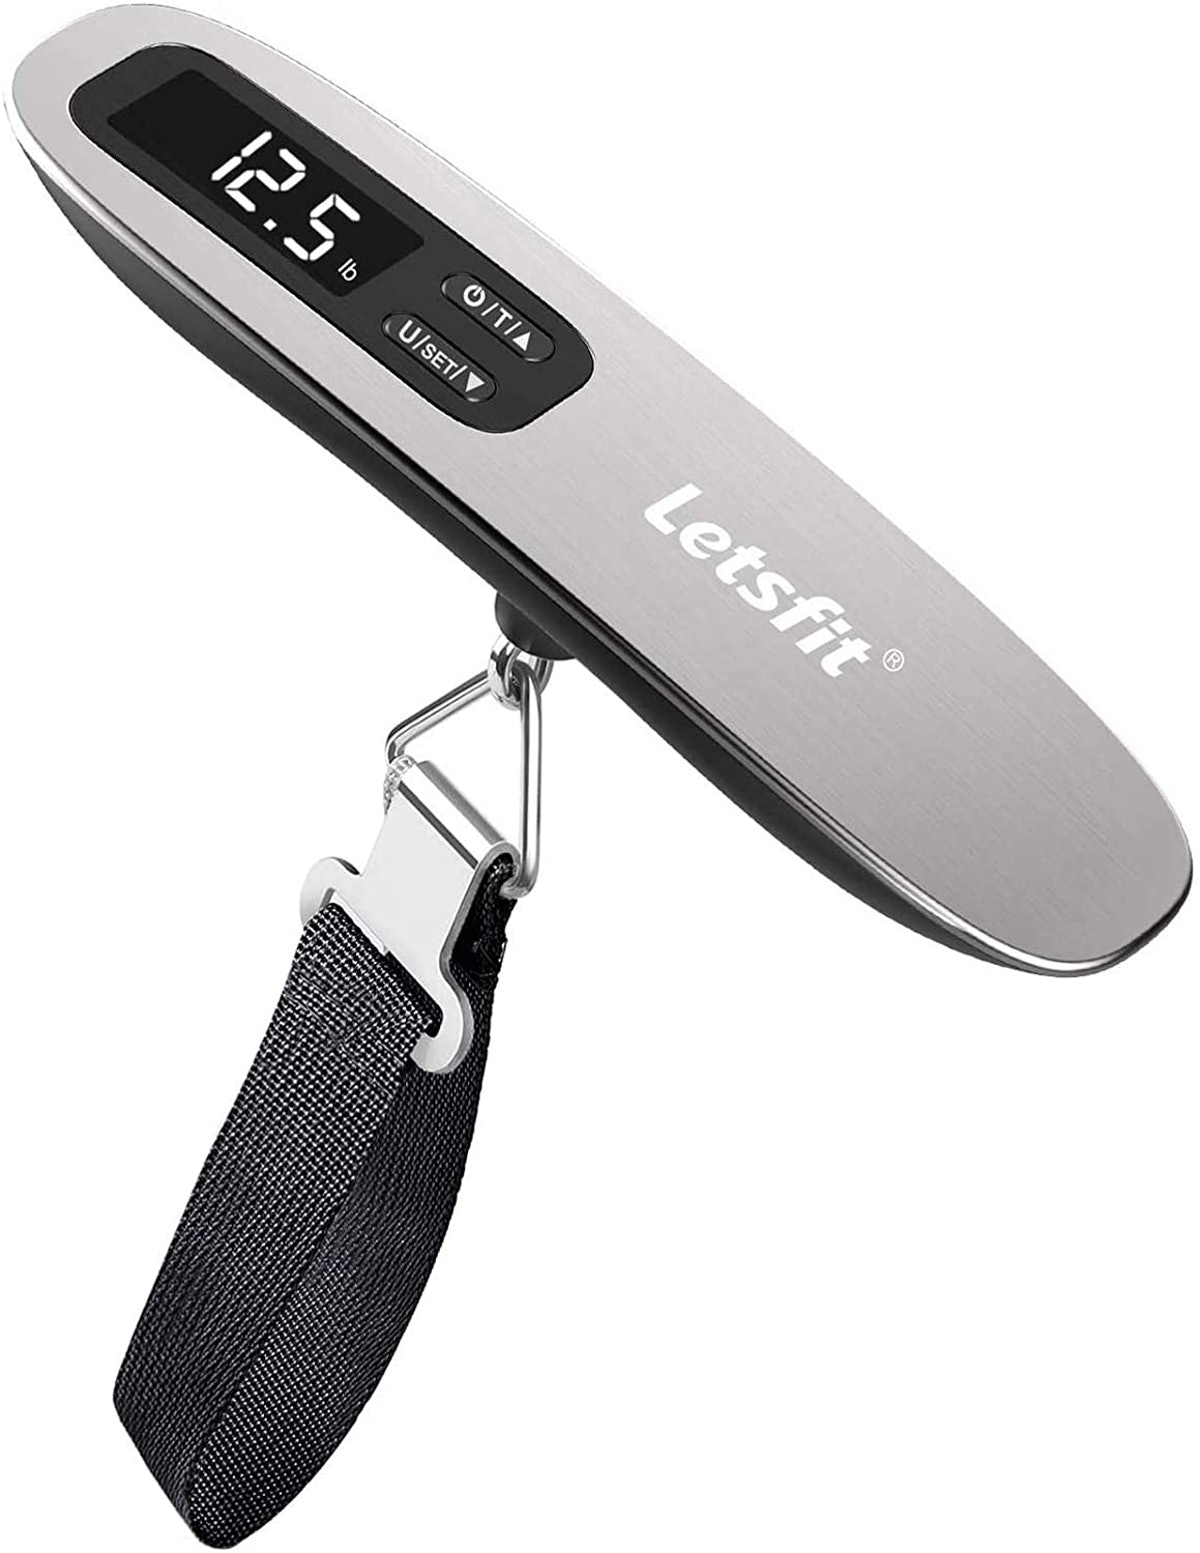 Letsfit Digital Hanging Luggage Scale With Backlit LCD Display